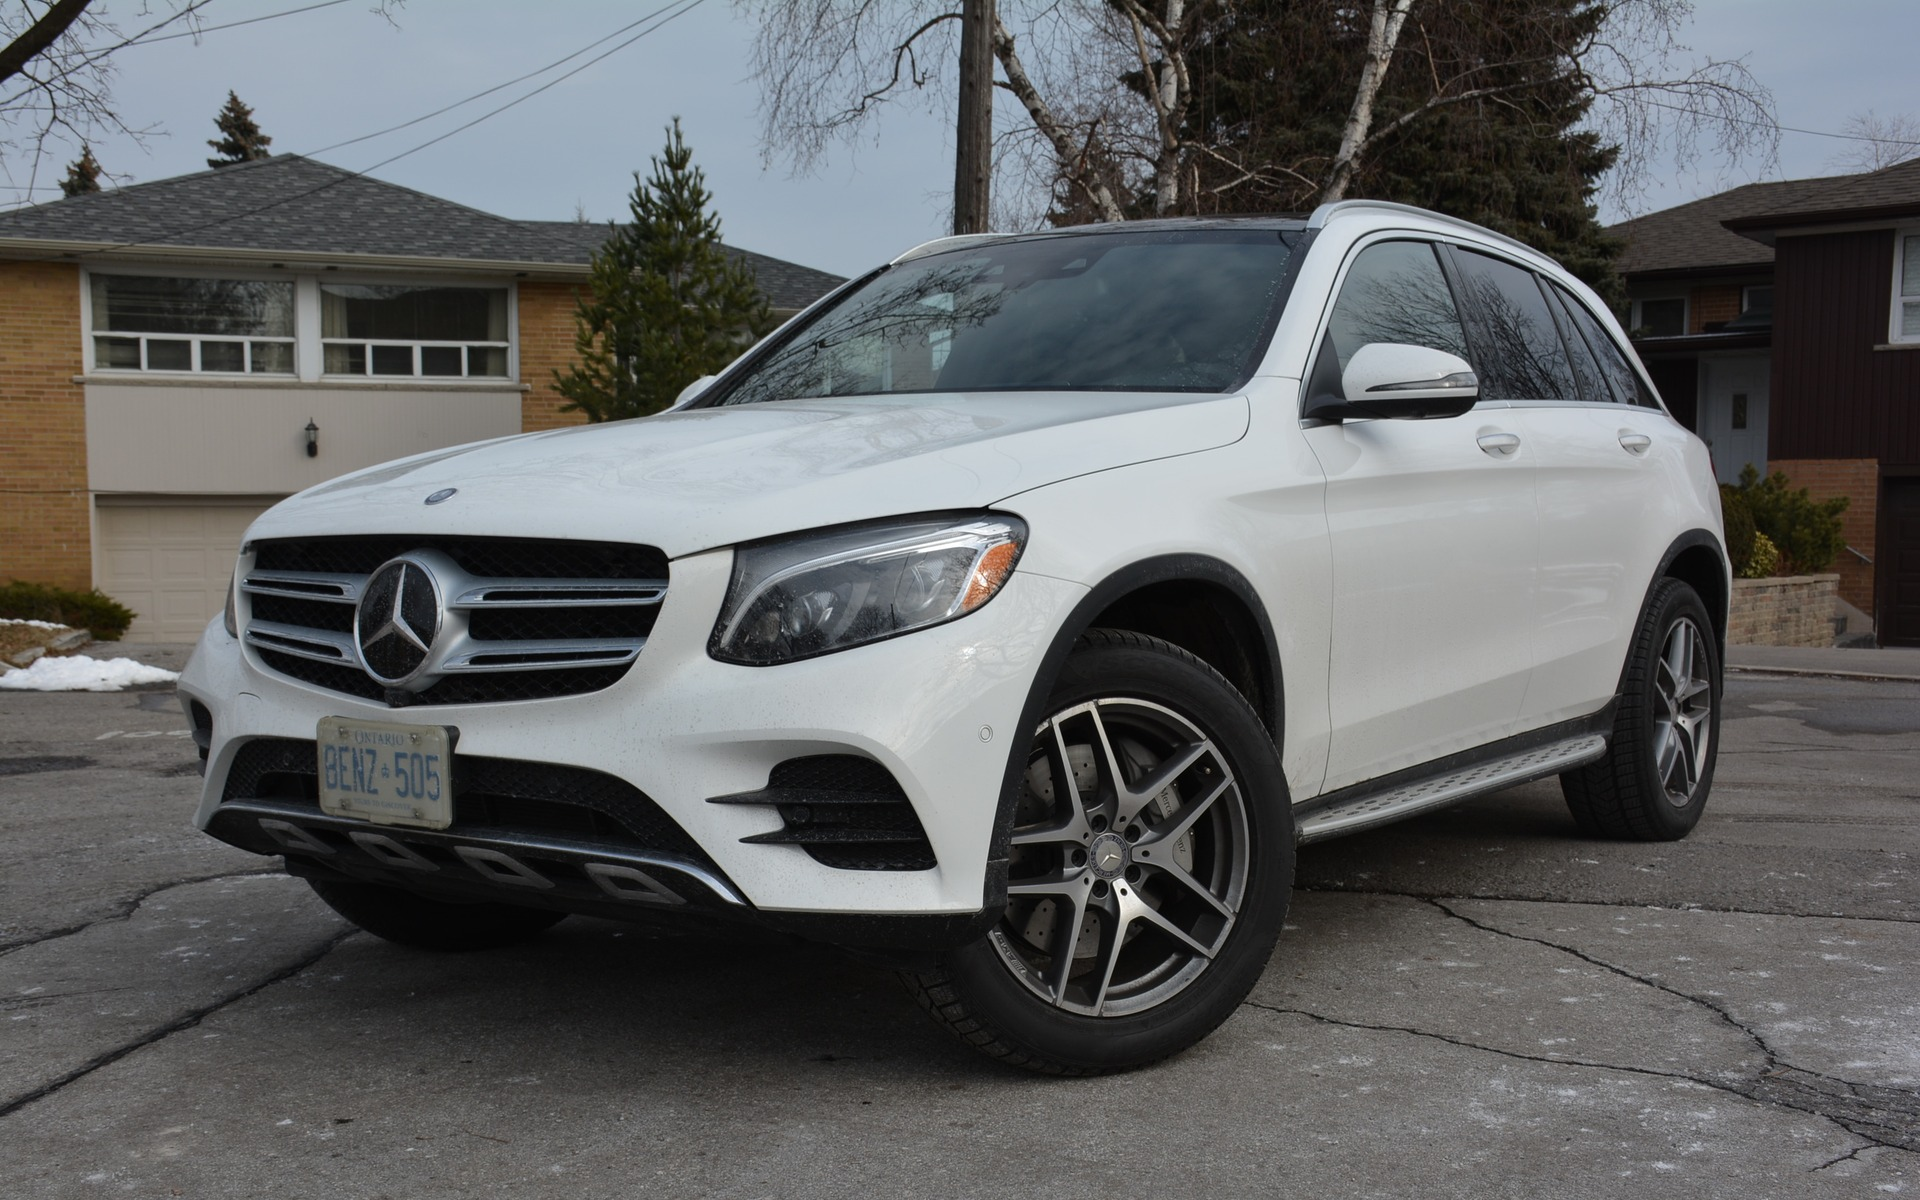 https://i.gaw.to/photos/2/4/2/242357_2016_Mercedes-Benz_GLC-Class.jpg